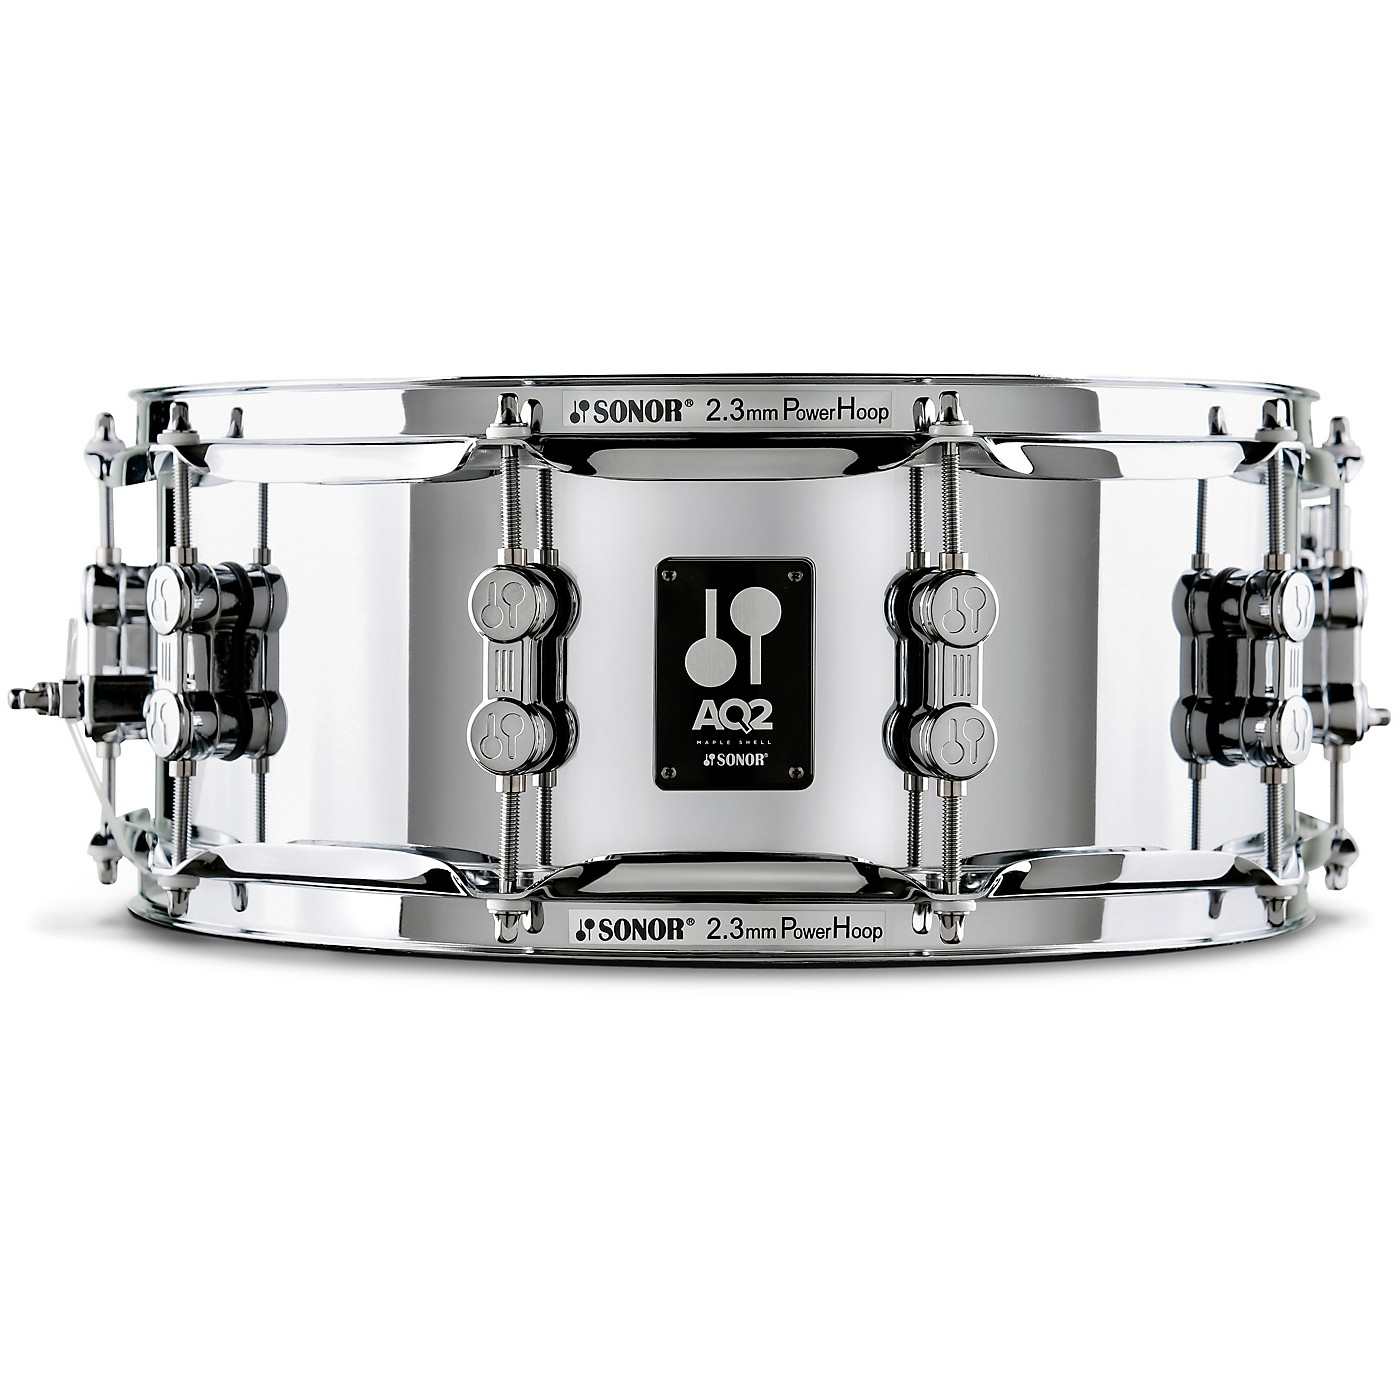 SONOR AQ2 Steel Snare Drum thumbnail